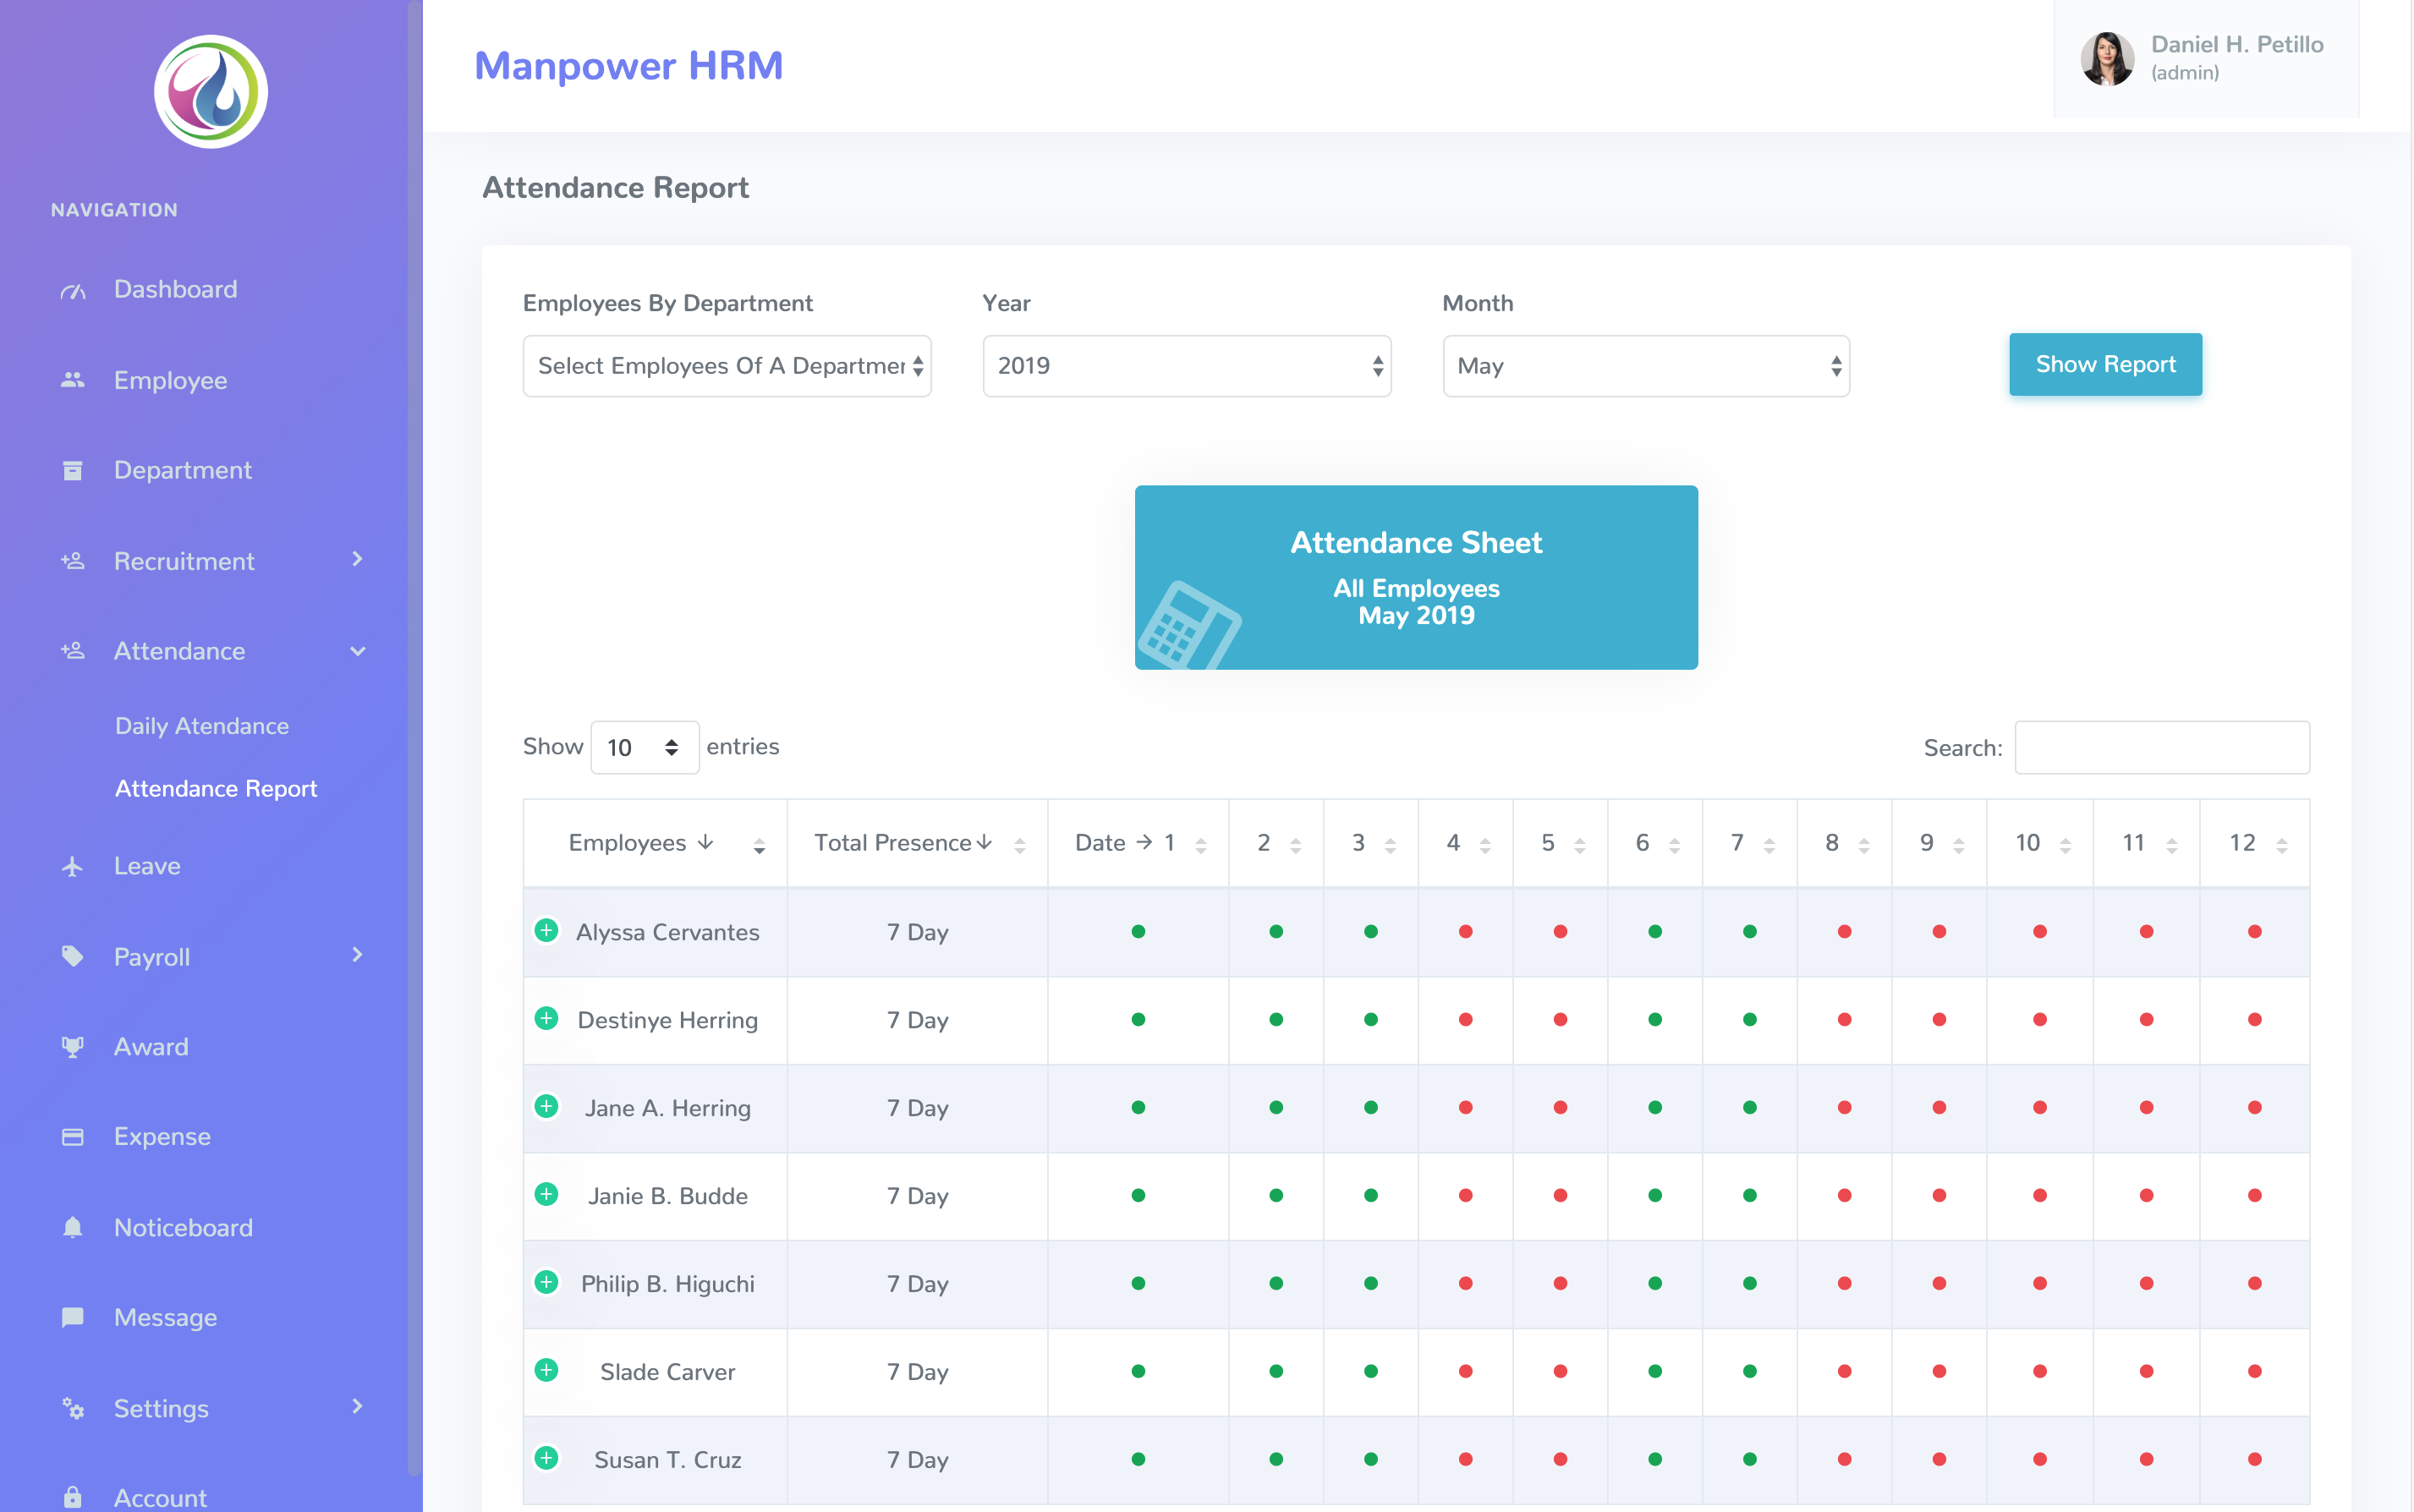 Manpower Hrm By Creativeitem Ad Manpower Ad Hrm Attendance Sheet Marvel Funny Codecanyon